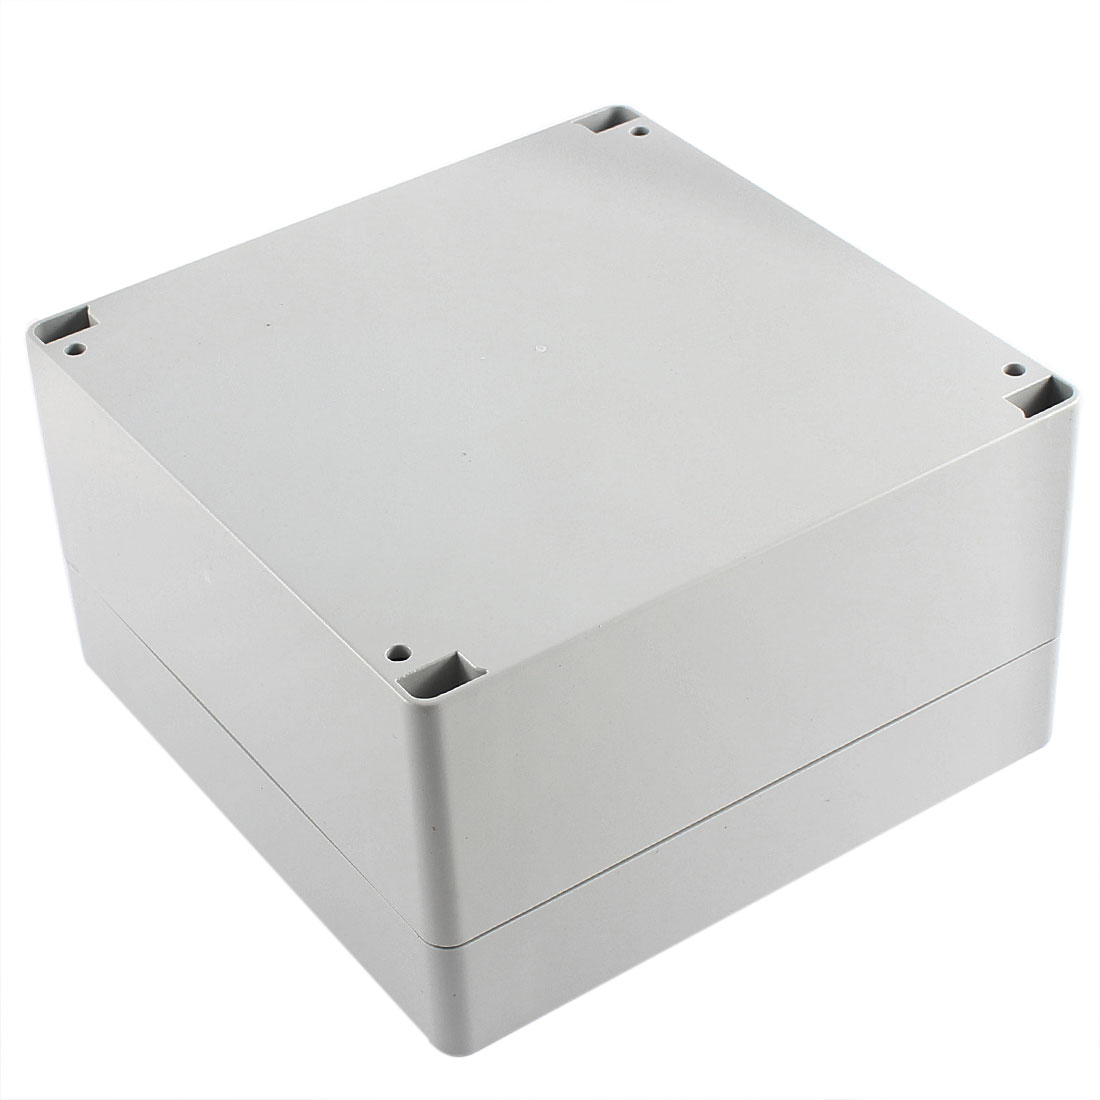 Plastic Electronic Project Box Enclosure Shell Case 160 x 160 x 90mm